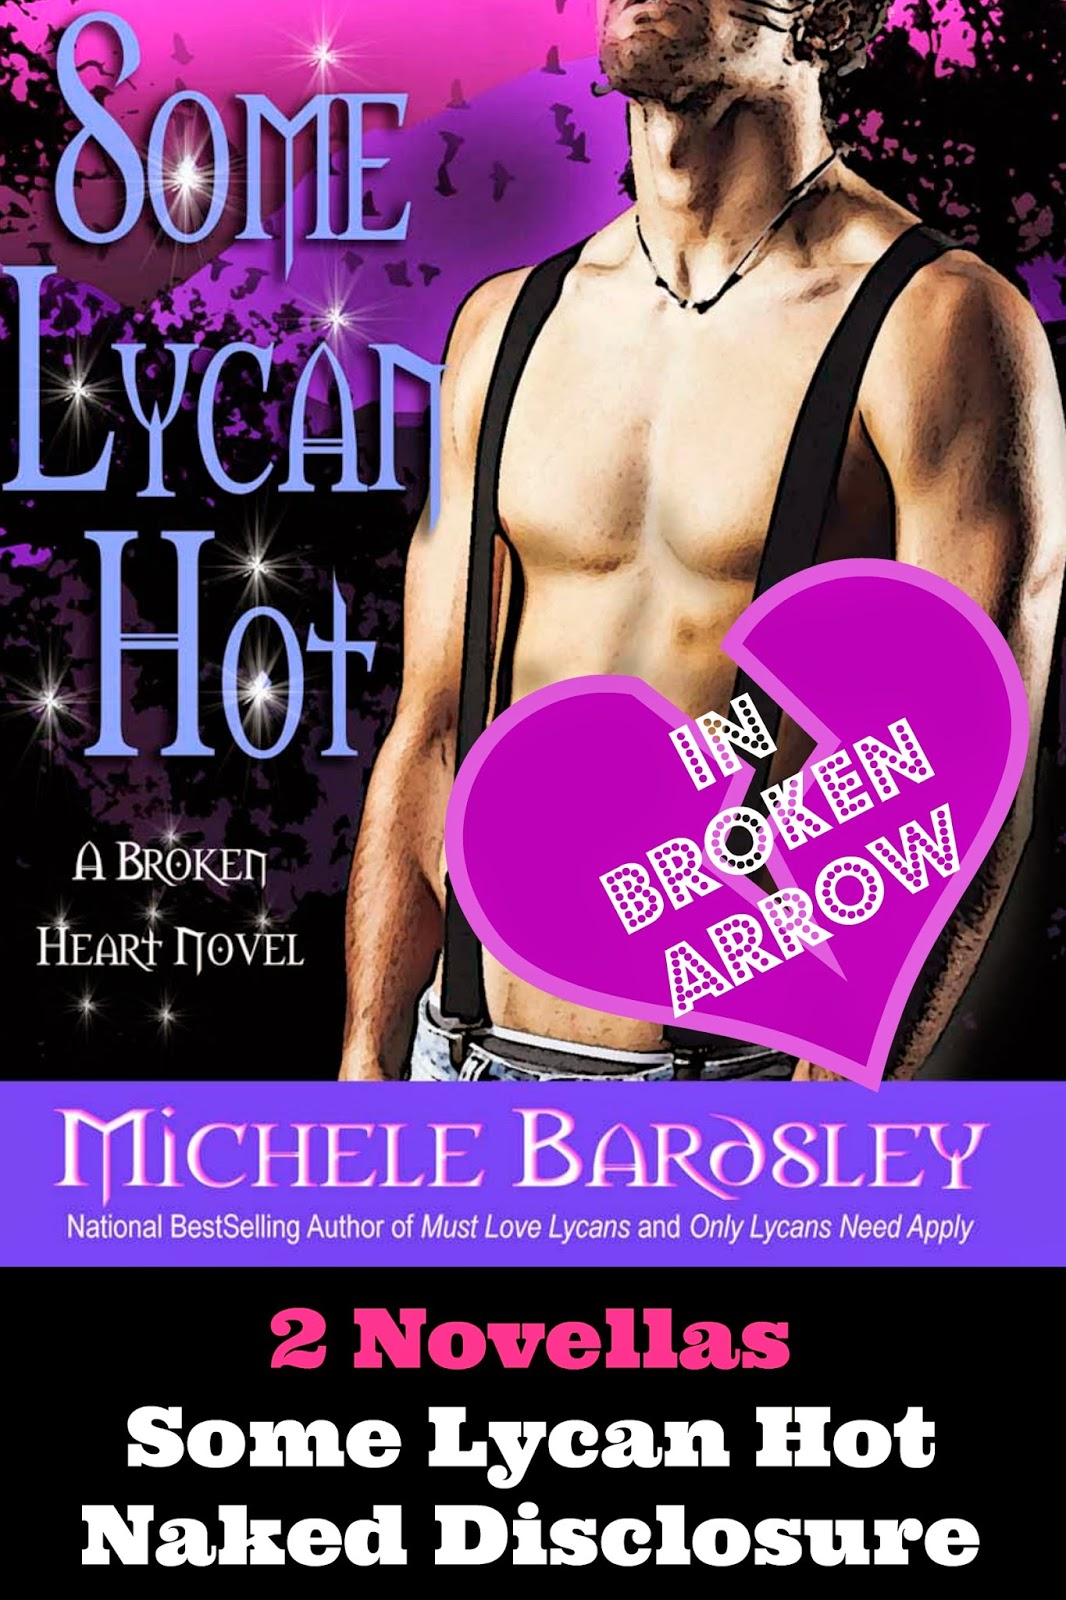 Some Lycan Hot/Naked Disclosure bundle by Michele Bardsley.